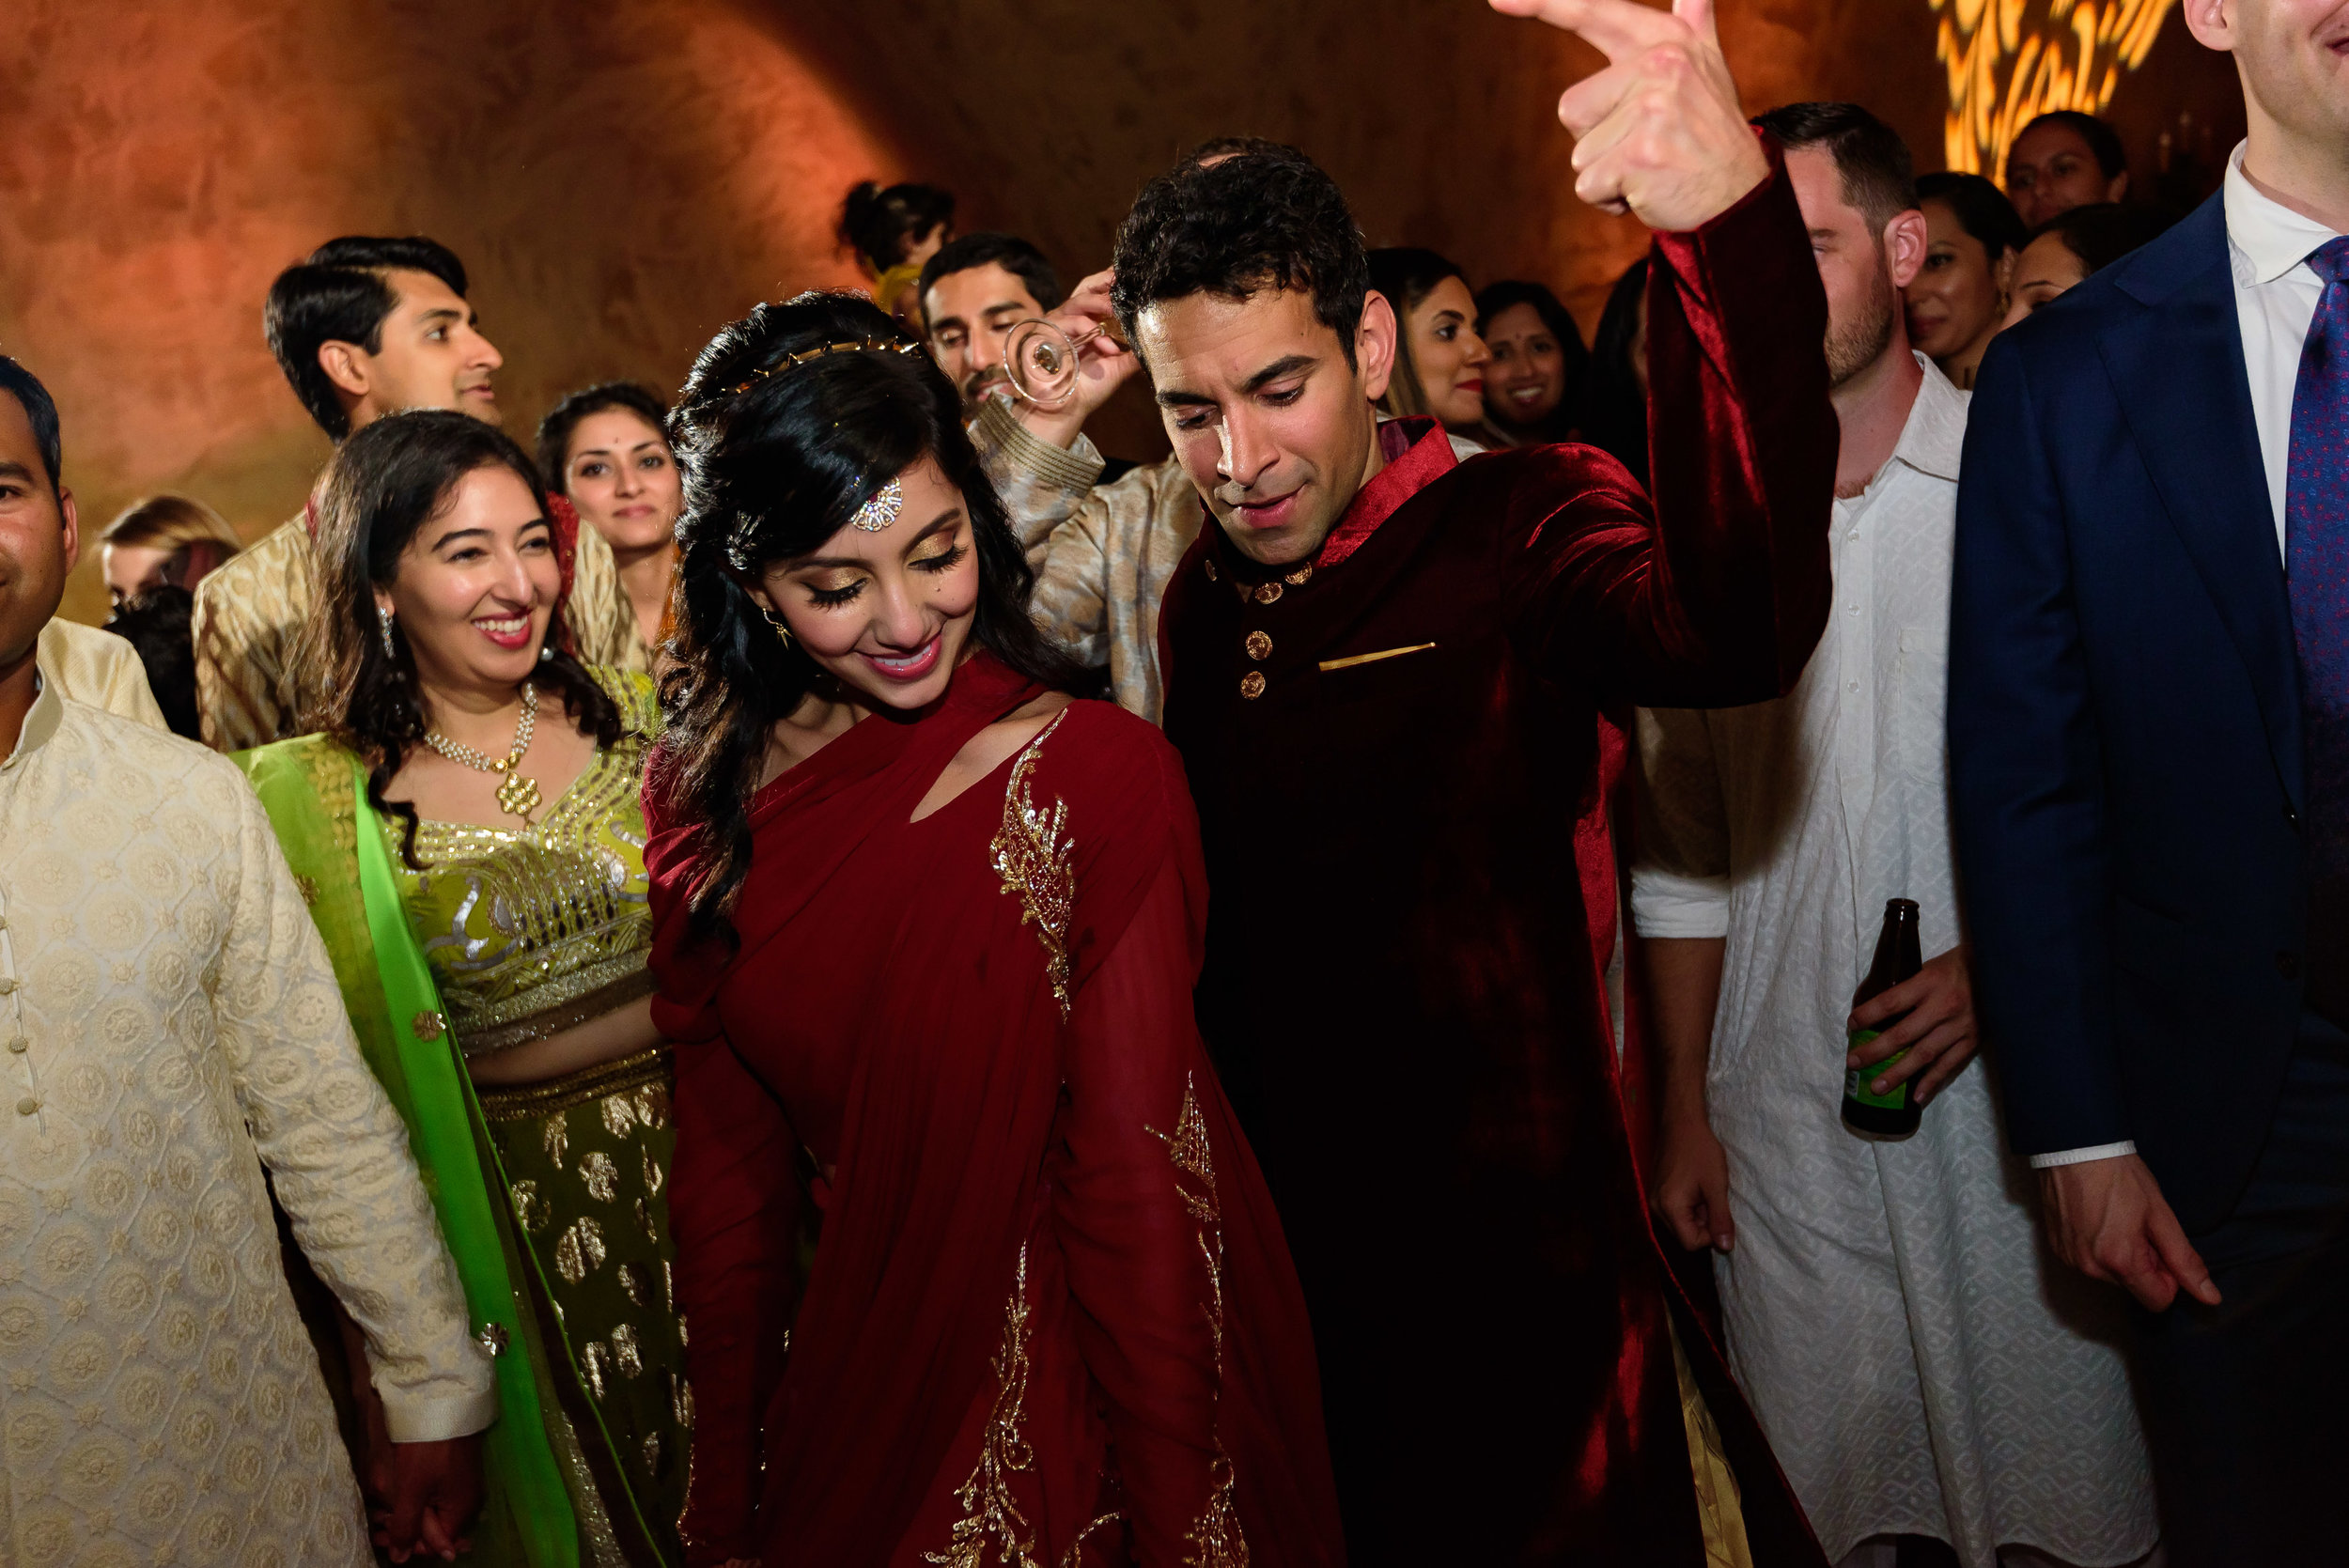 Meritage Resort Indian Wedding